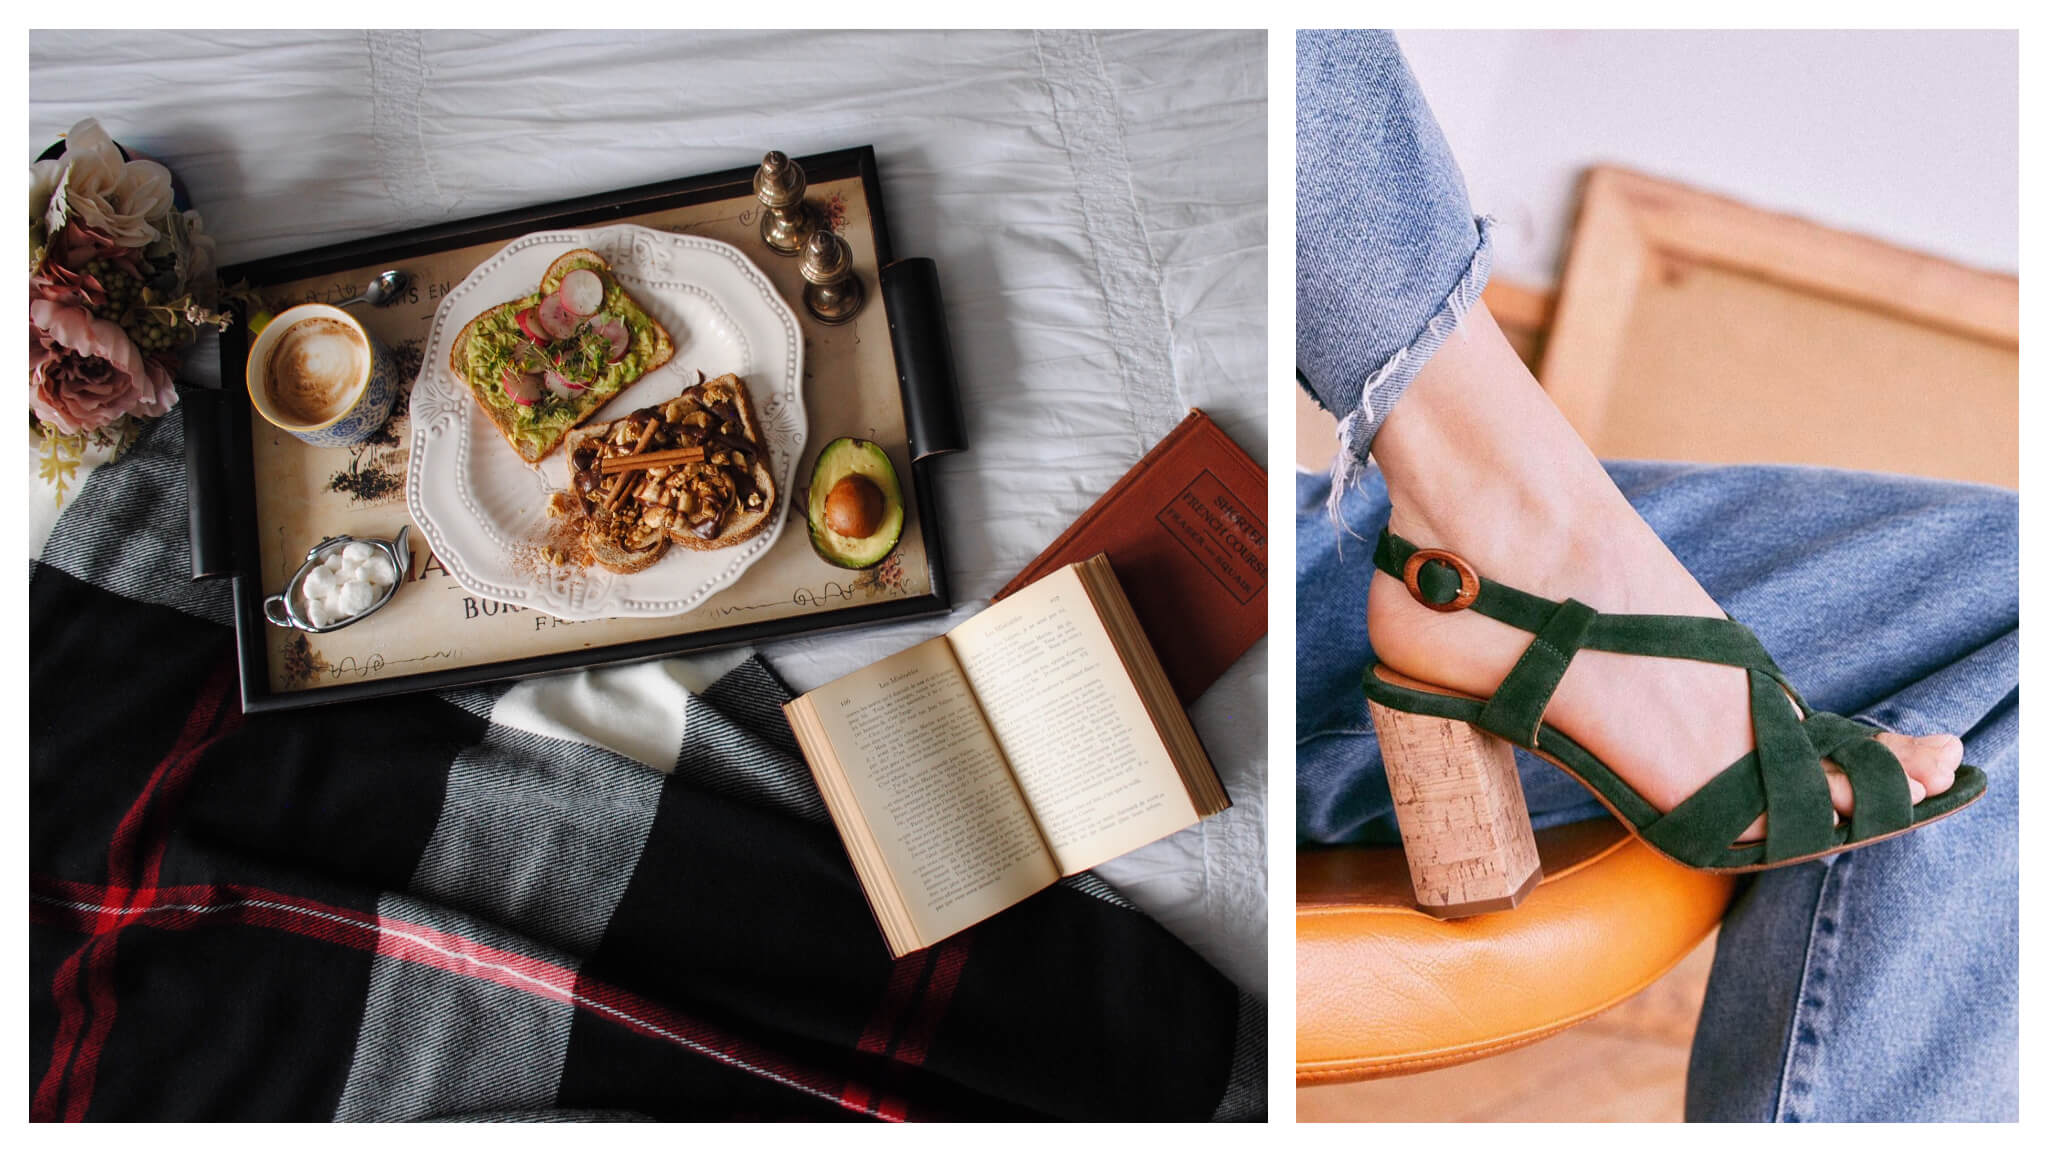 Left, a tray with a hearty breakfast and an open book, the perfect way to enjoy a day of confinement. Right, a pair of Sézane green velvet and cork-heel shoes to shop to remind you of Paris without leaving home.